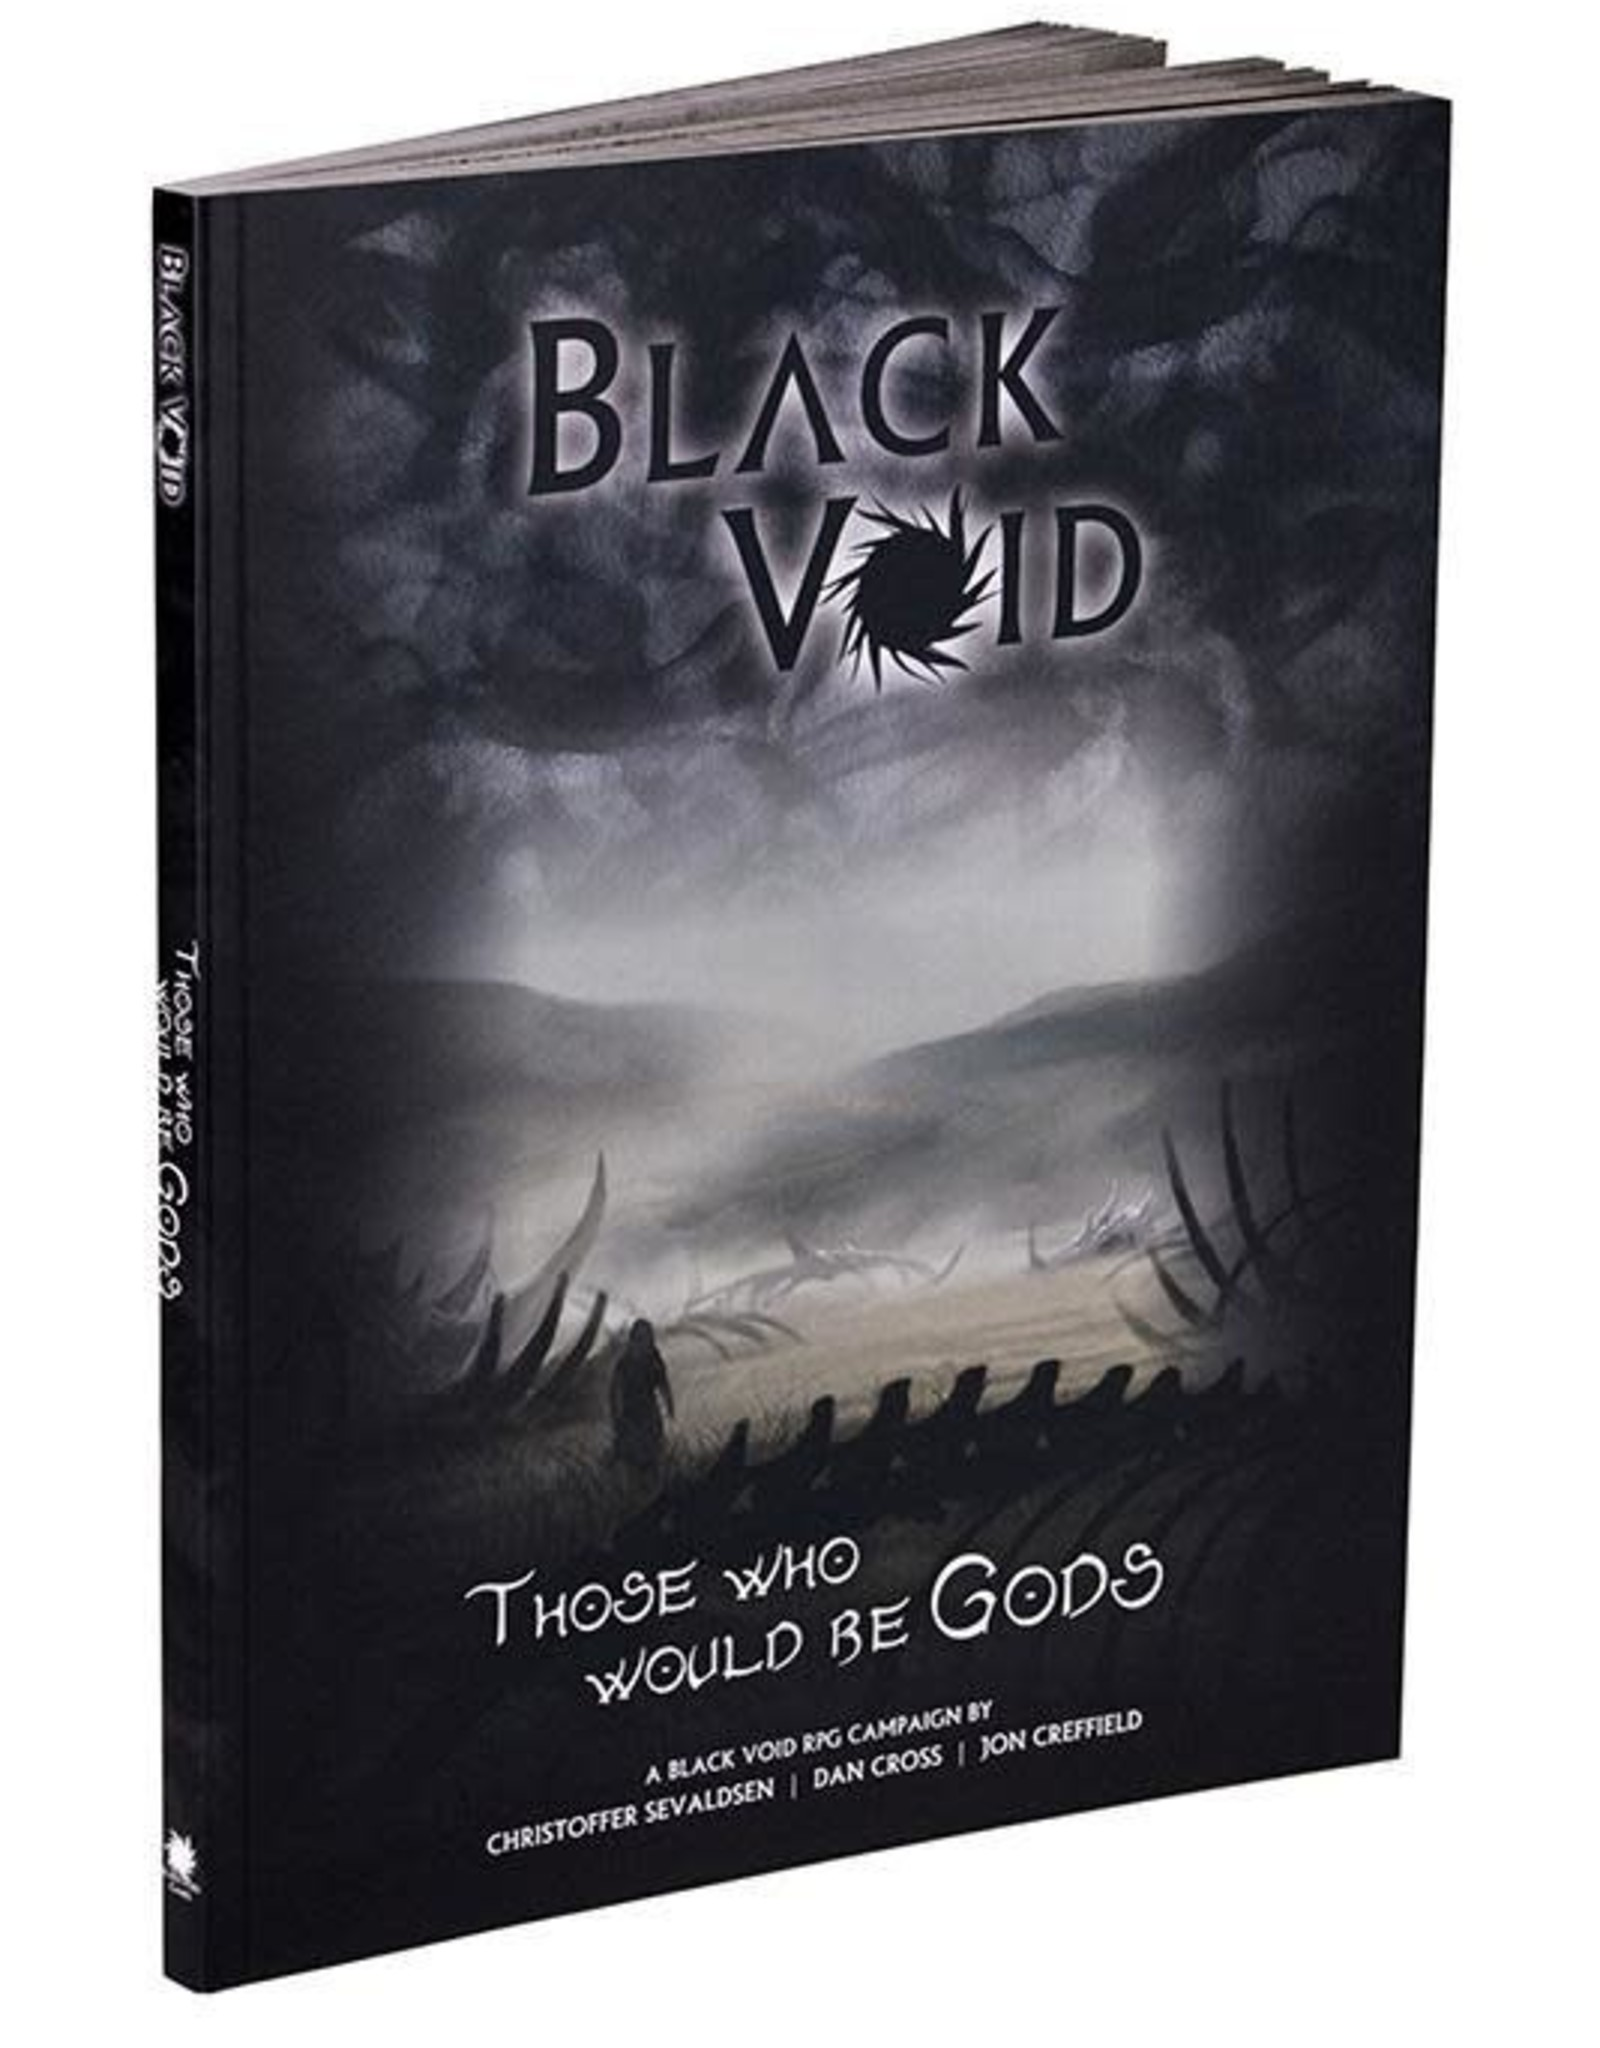 Black Void Those Who Would Be Gods